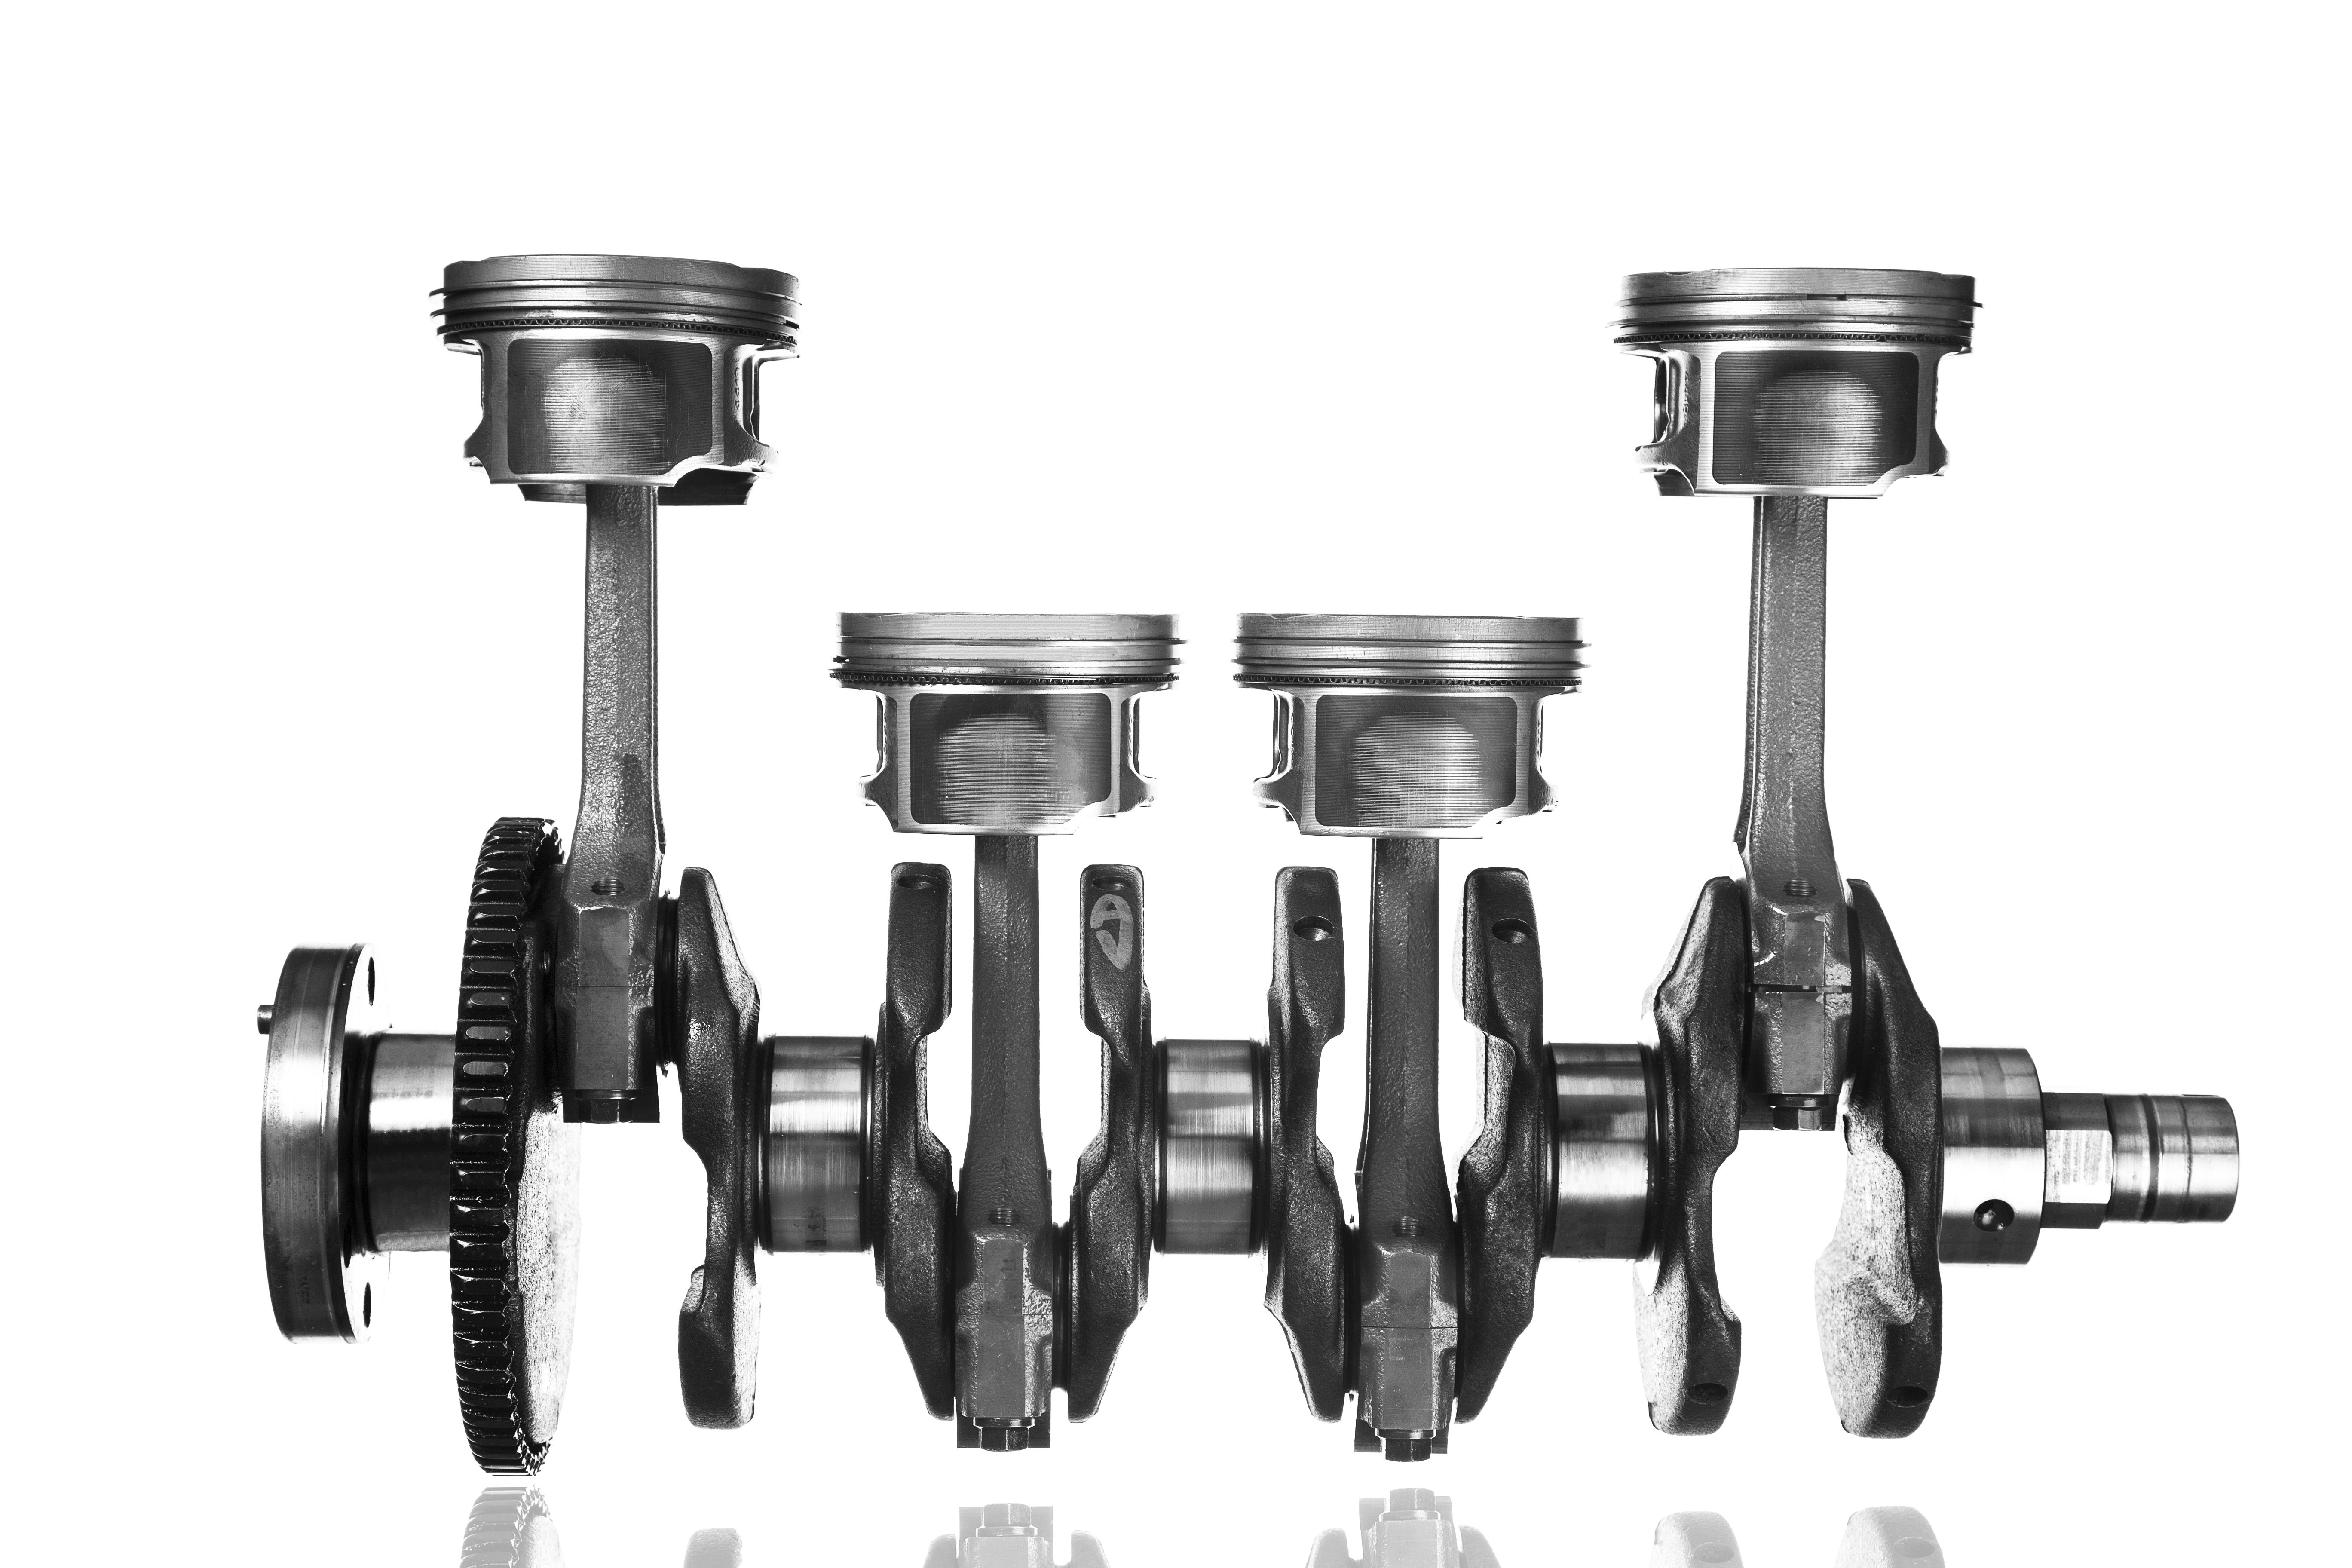 4 Engine Parts Pistons Cylinders Rods And A Crankshaft